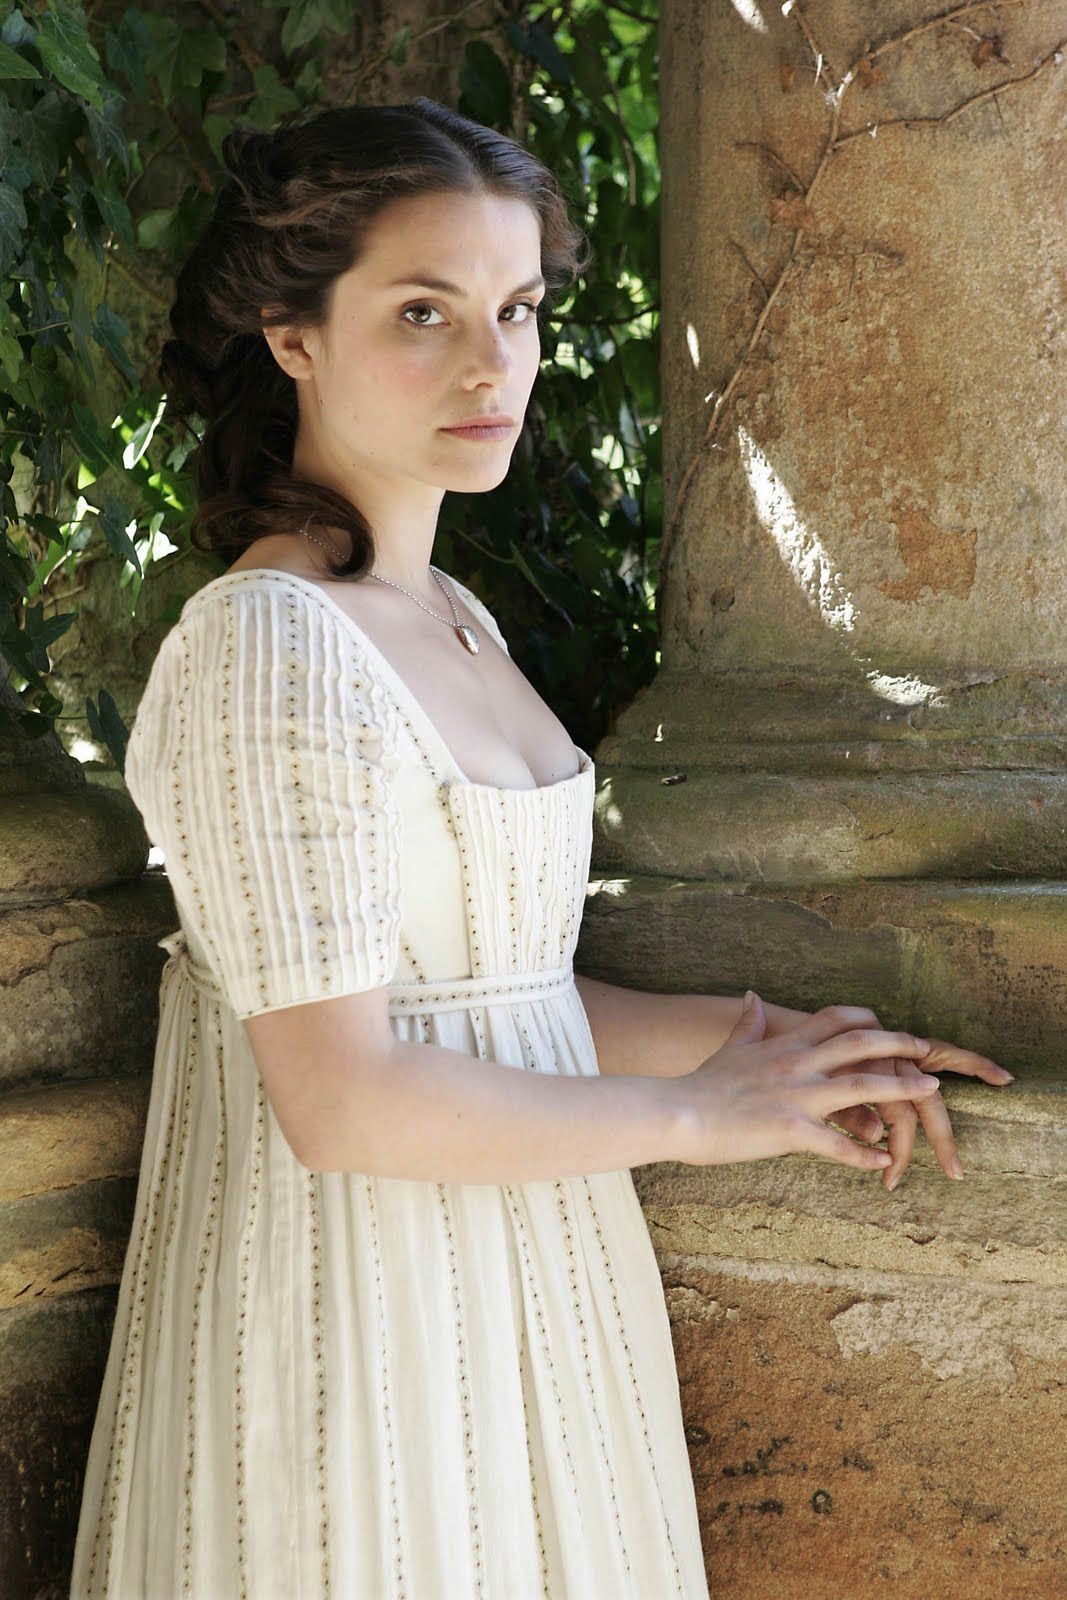 Charlotte Riley as Catherine in Wuthering Heights (2009